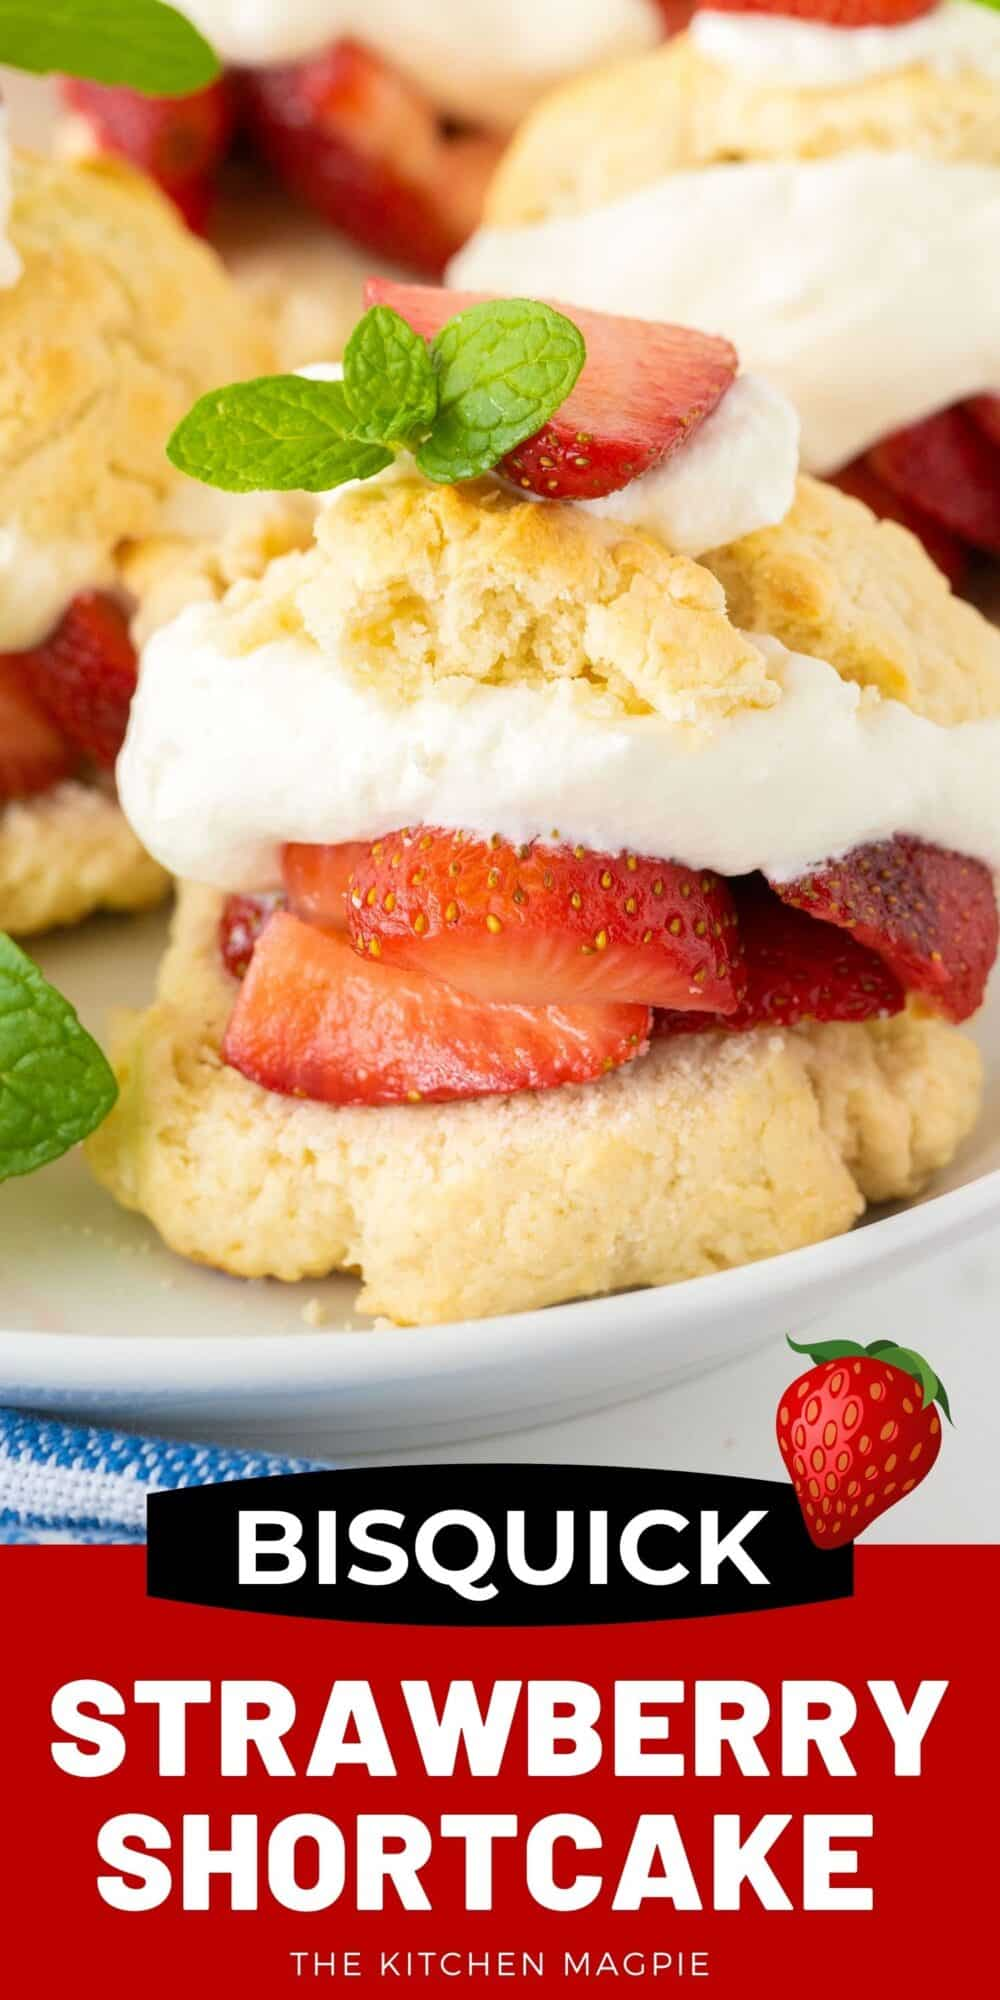 This easy and delicious classic Bisquick™ Strawberry Shortcake is a great way to enjoy fresh strawberries and whipped cream in a light dessert that takes barely any time to make!